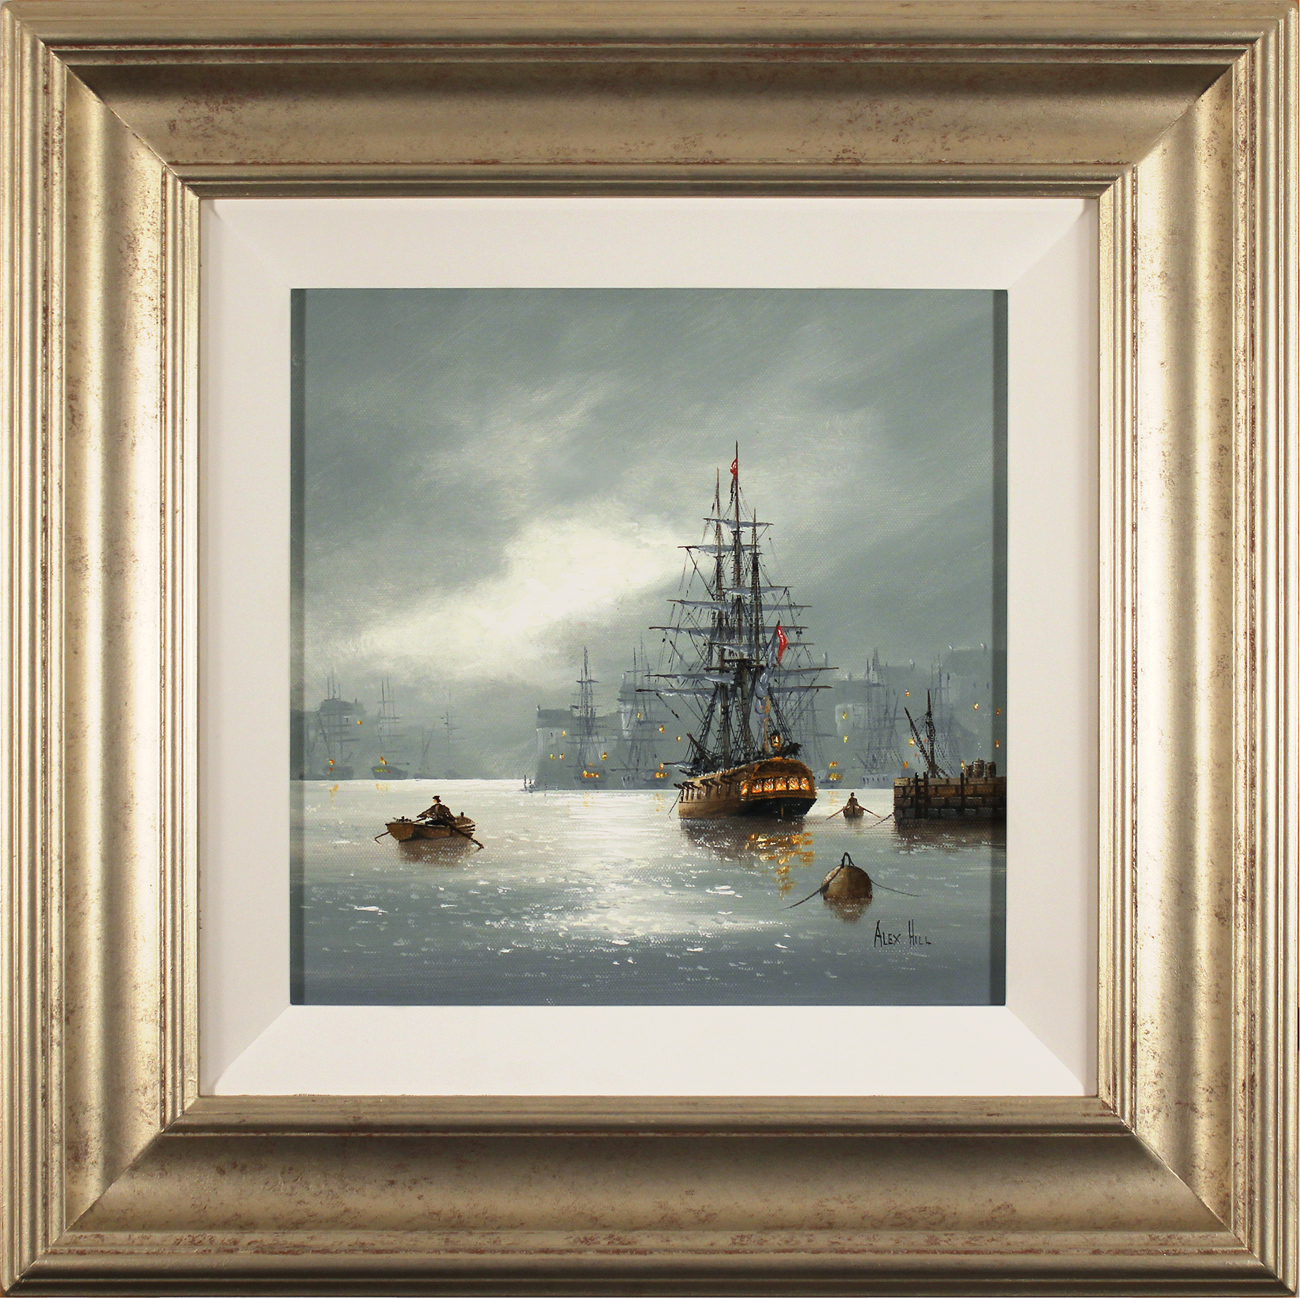 Alex Hill, Original oil painting on canvas, Leaving Port Click to enlarge